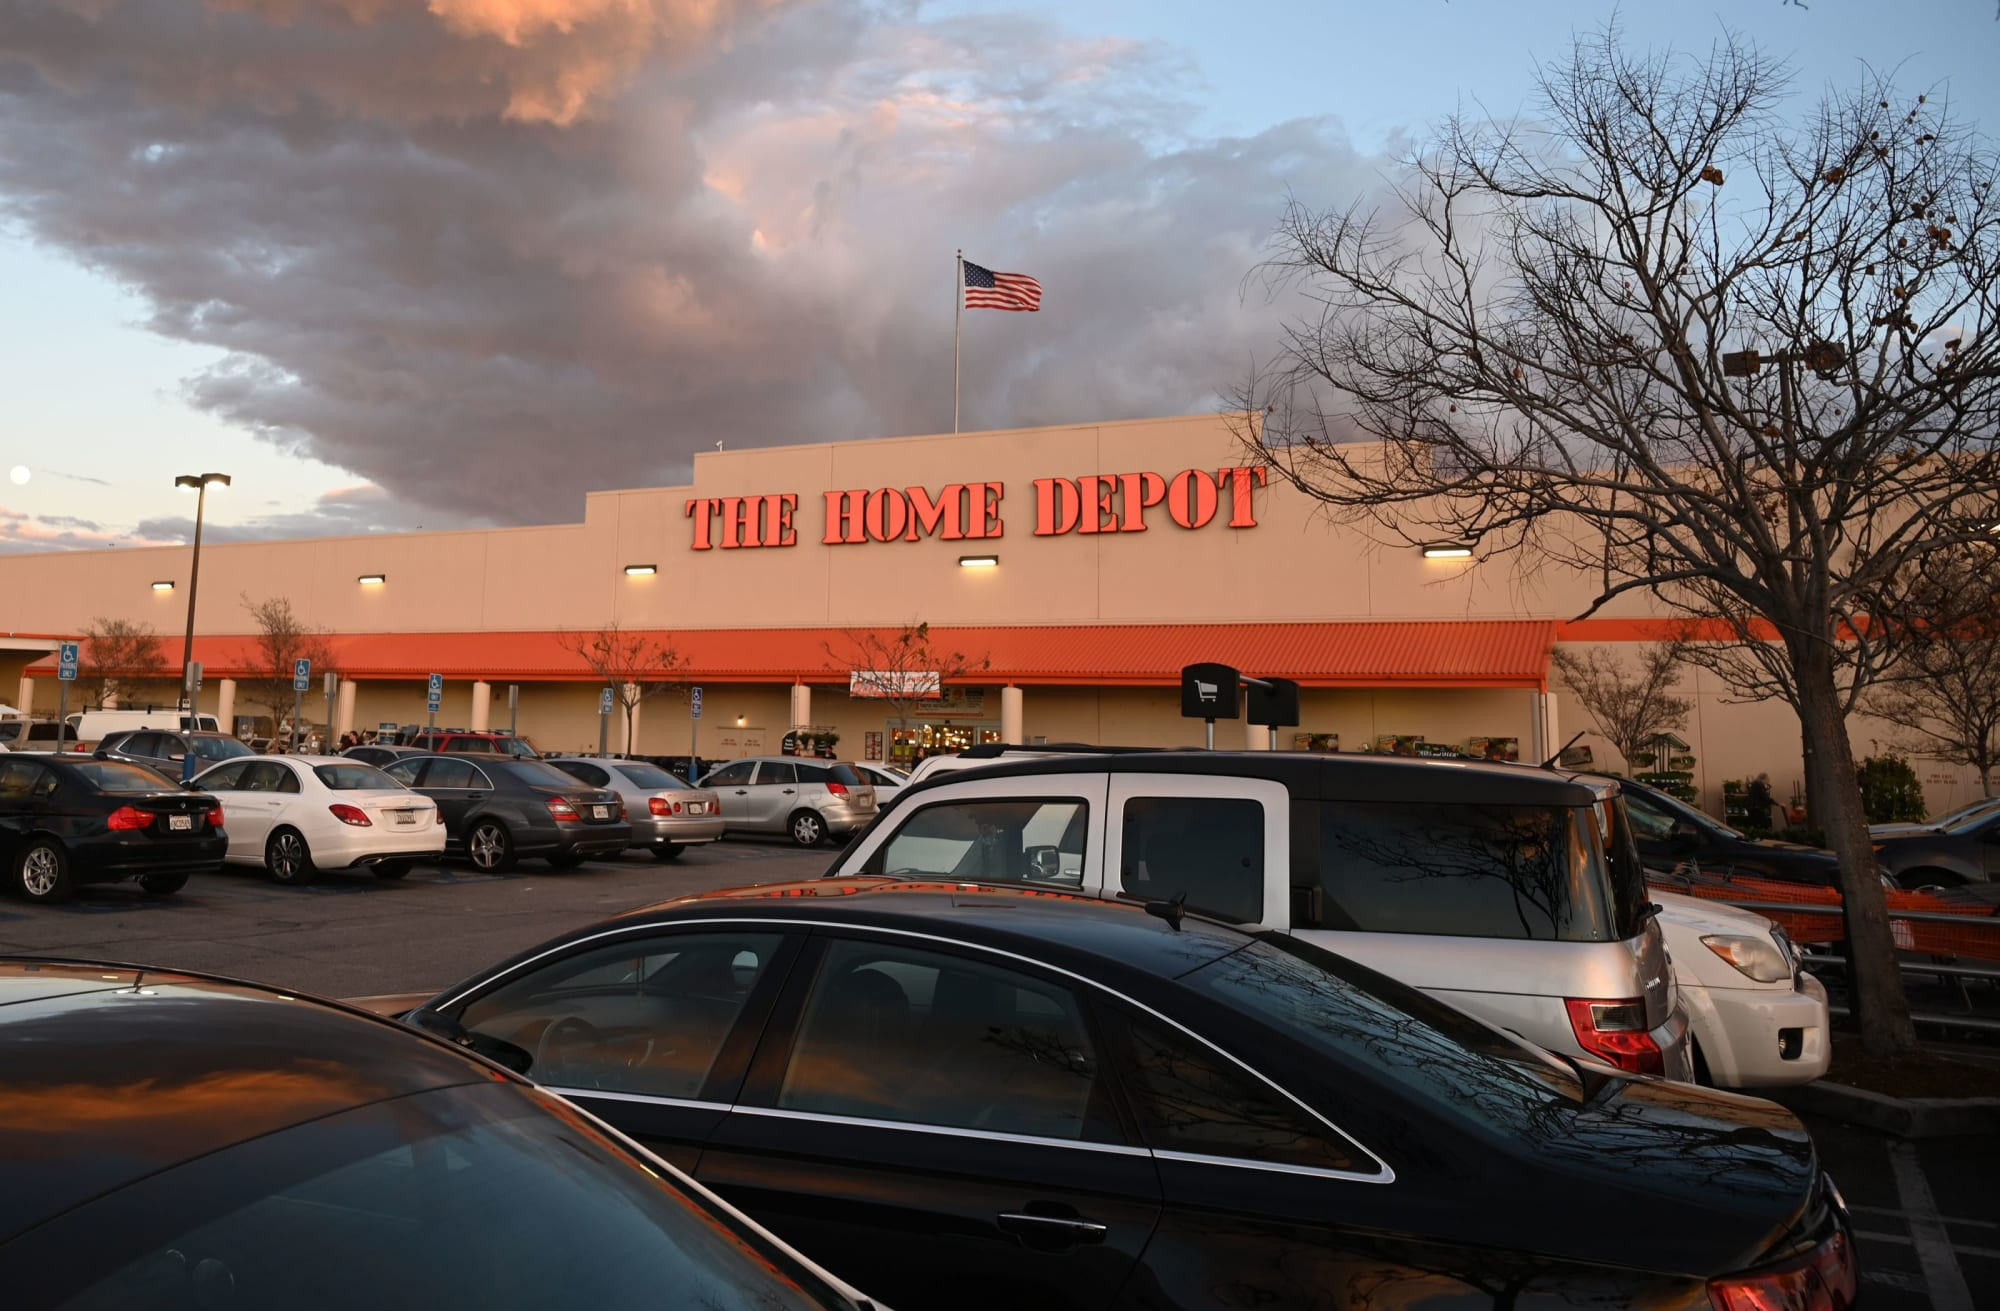 Is Home Depot Open On Christmas Eve 2019